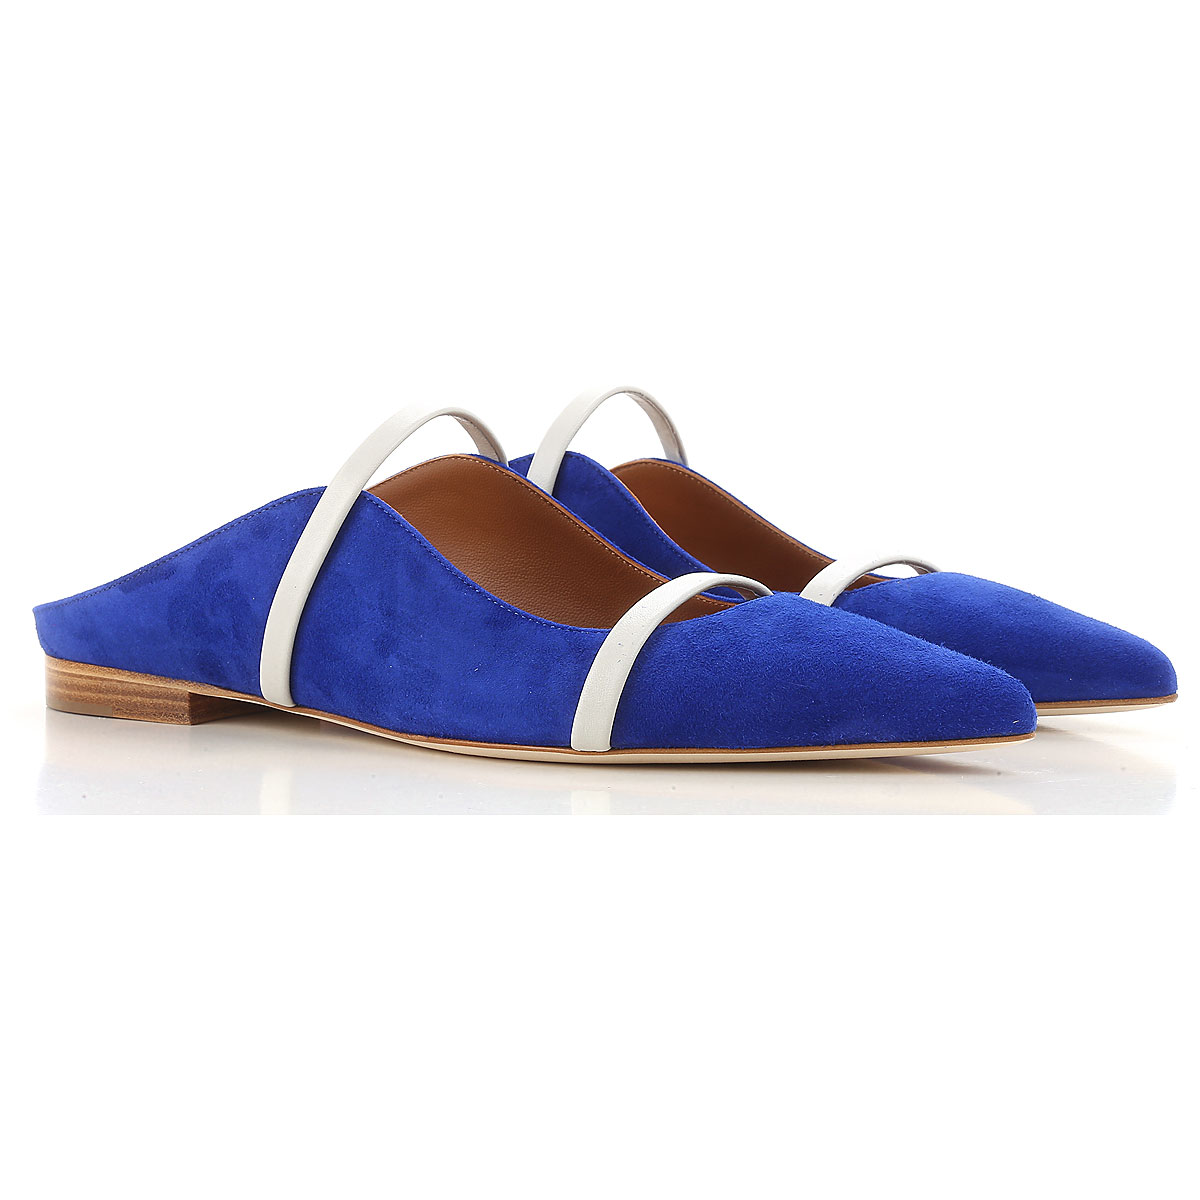 Image of Malone Souliers Ballet Flats Ballerina Shoes for Women On Sale, Electric Blue, Suede leather, 2017, 10 6 6.5